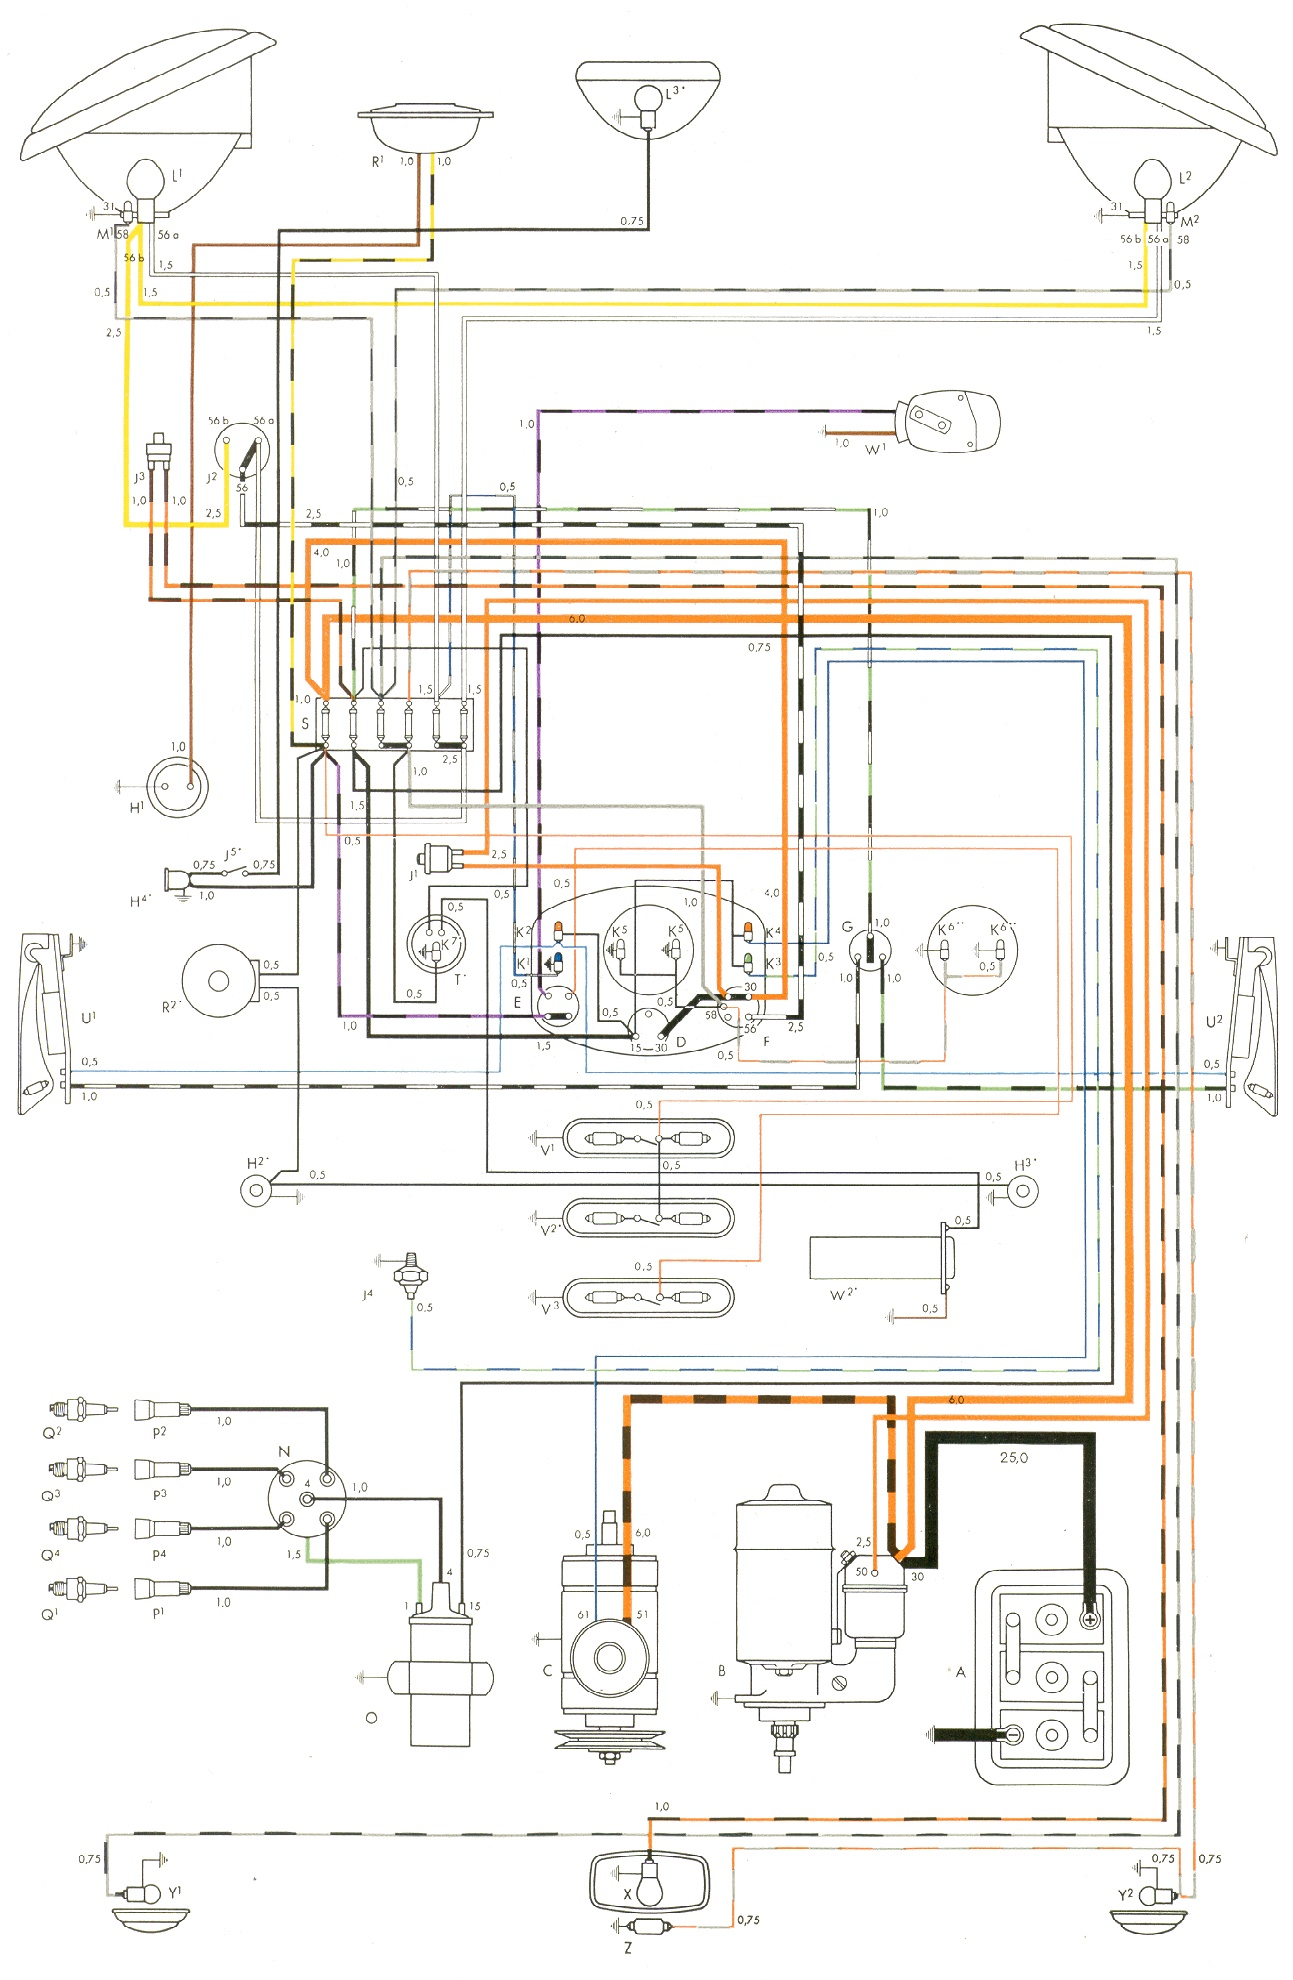 72 Volkswagen Wiring Diagram List Of Schematic Circuit Diagram \u2022 VW  Headlight Wiring 72 Vw Wiring Harness